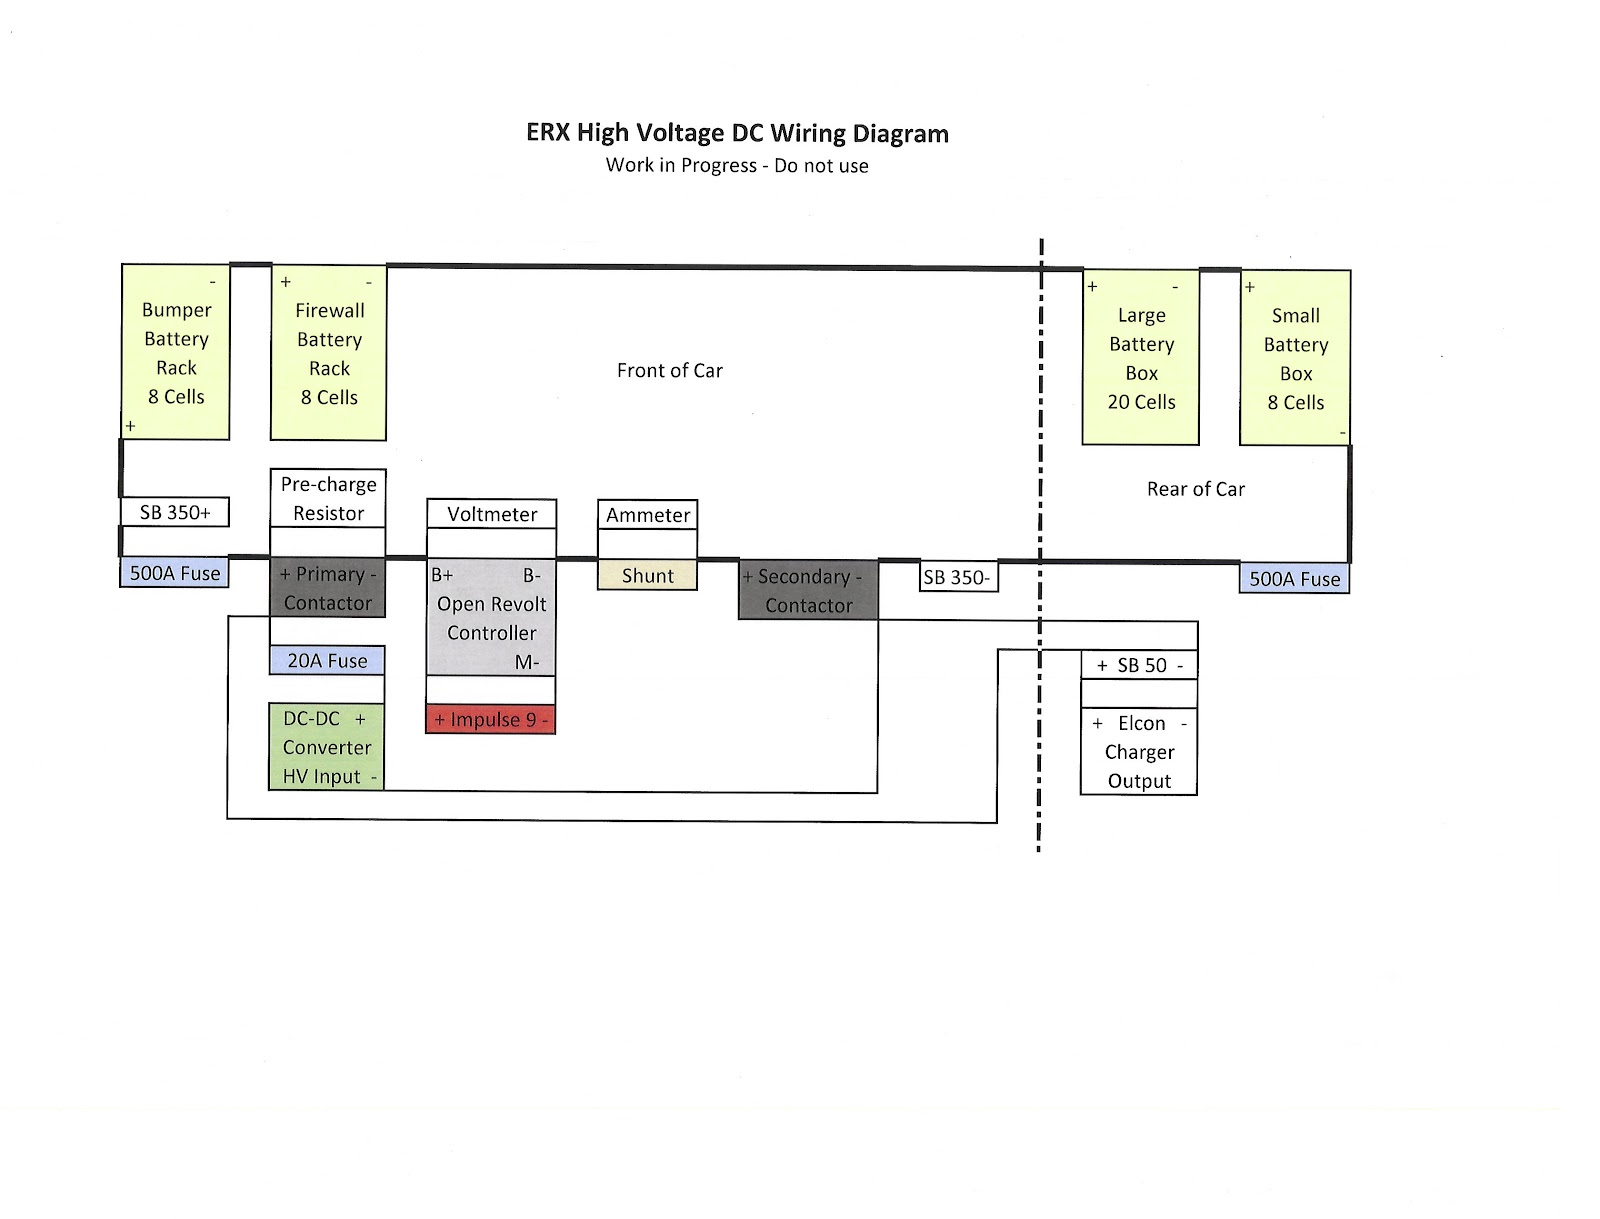 The Erxperience  Wiring Diagram